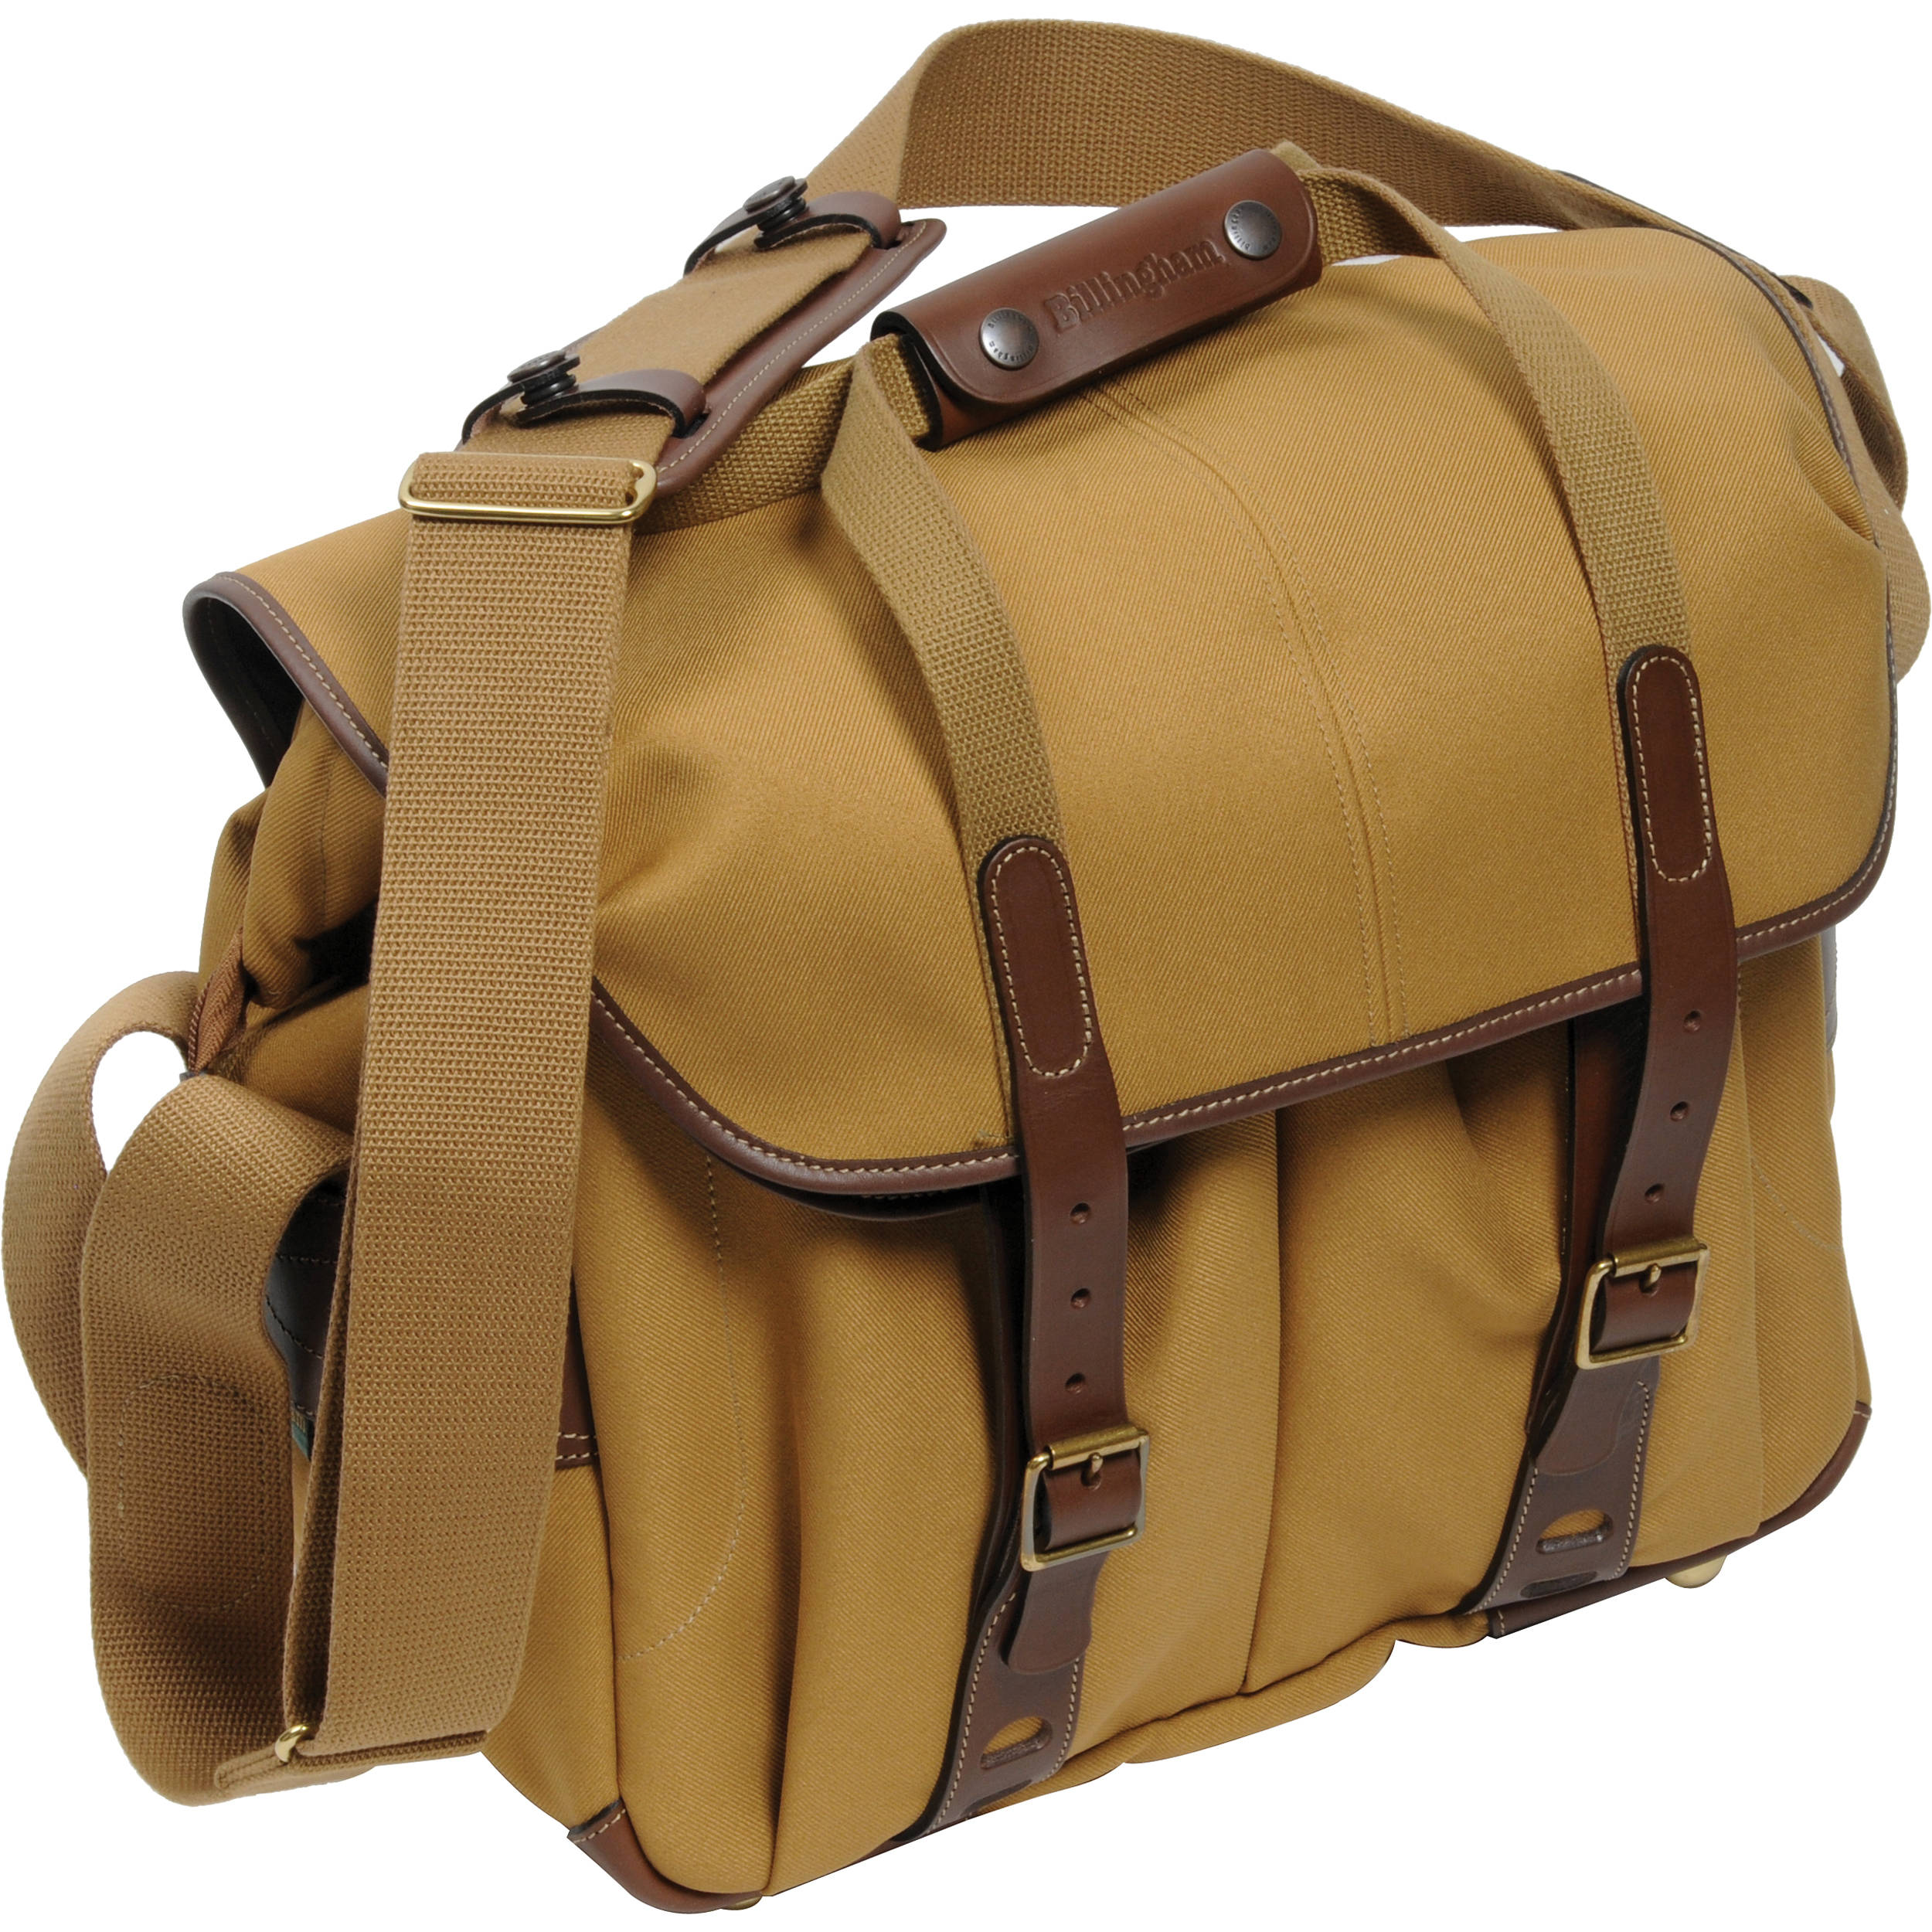 Billingham 307l Camera And Laptop Shoulder Bag Khaki With Chocolate Leather